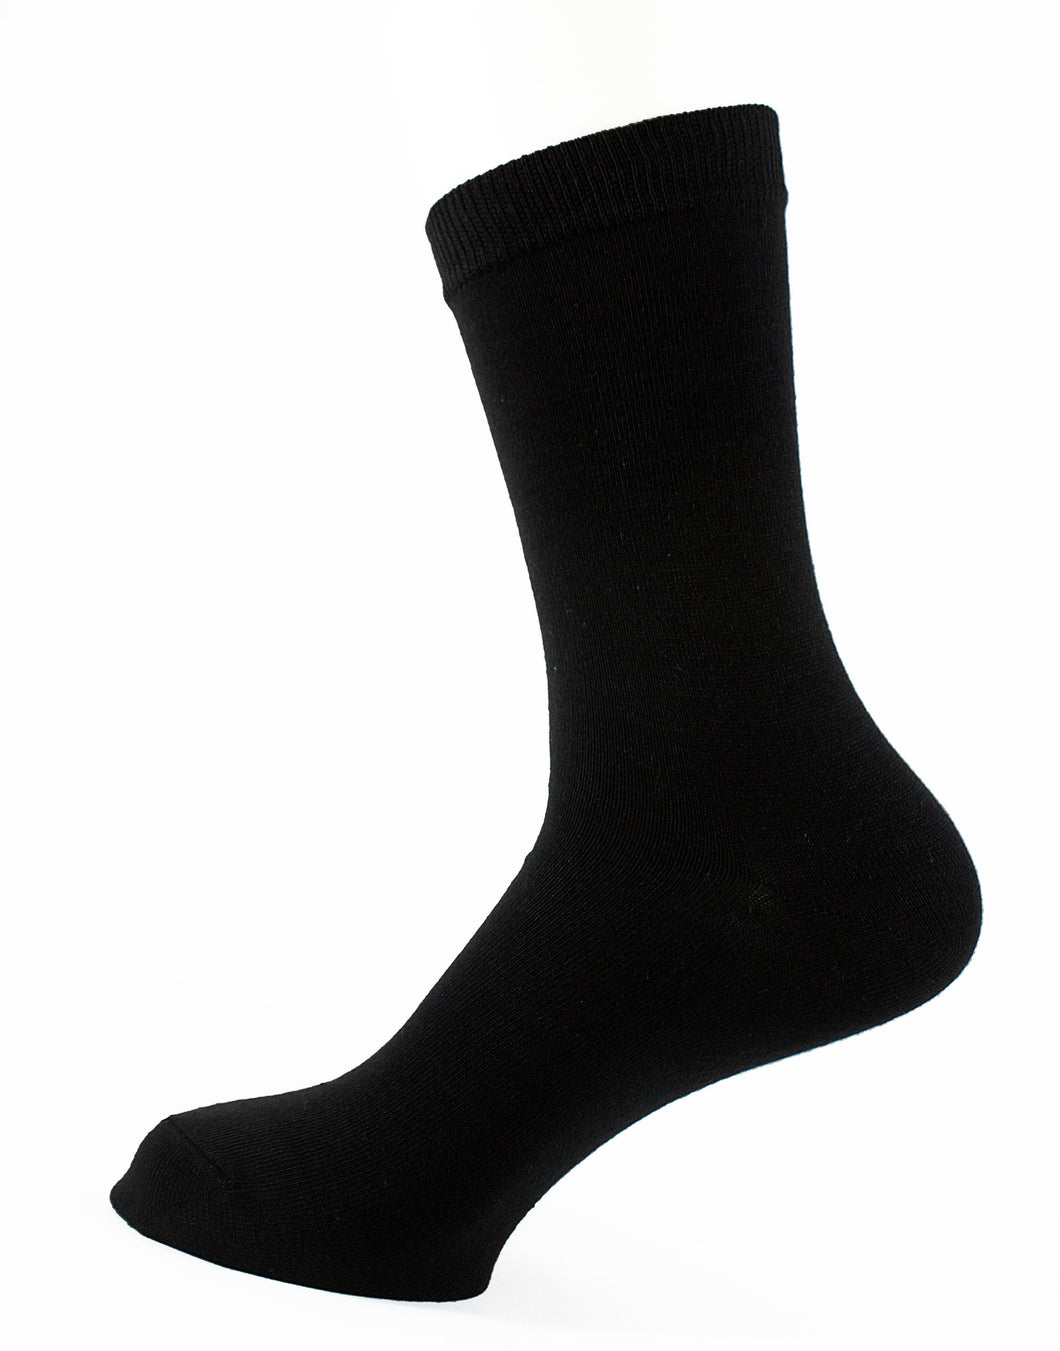 Black Women Socks - samnoveltysocks.com